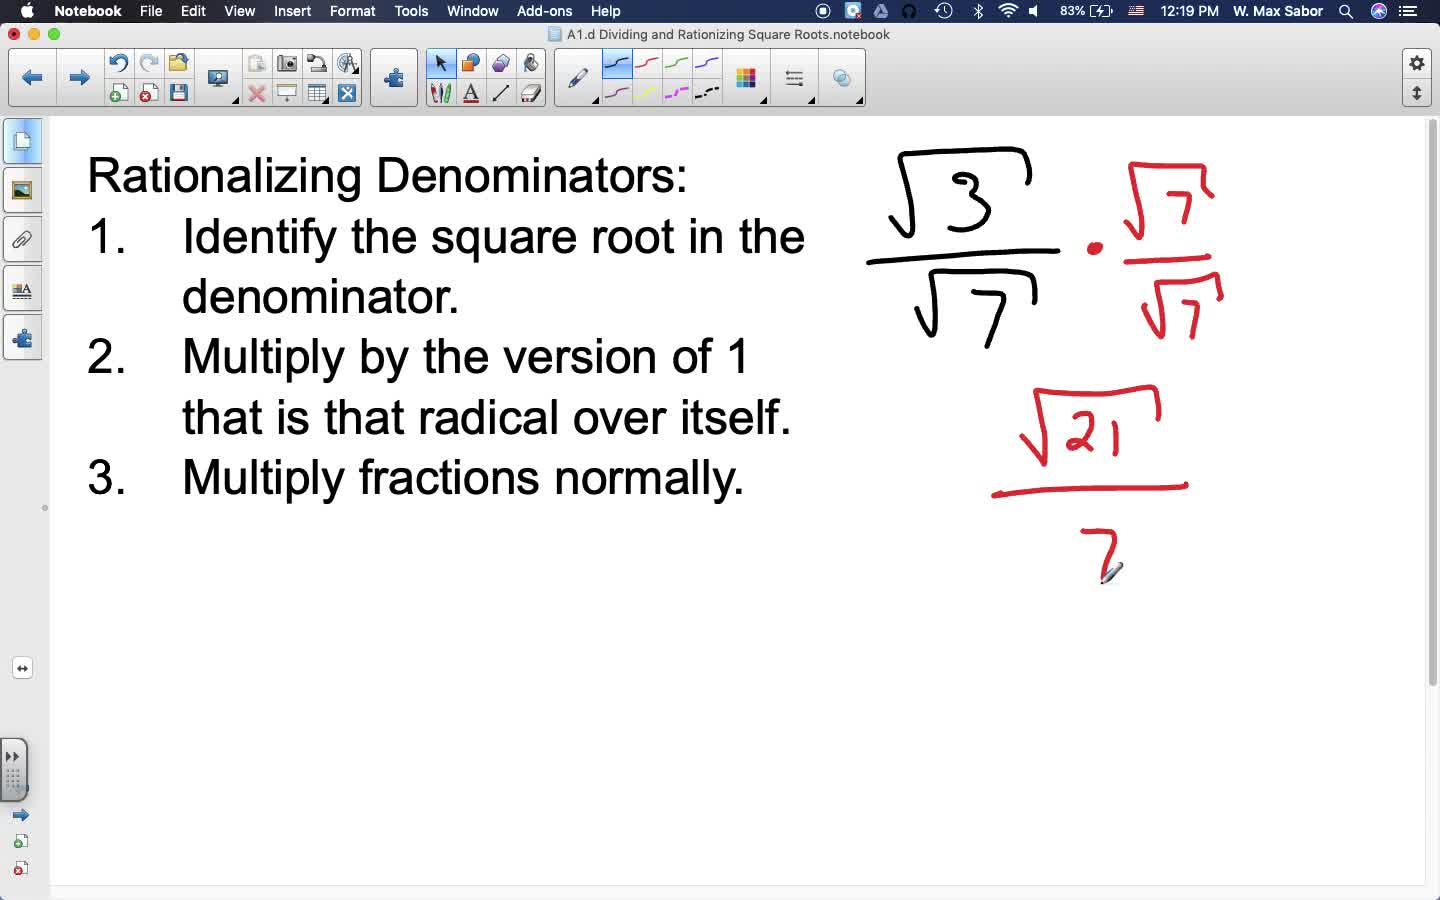 A1.d Dividing and Rationalizing Square Roots